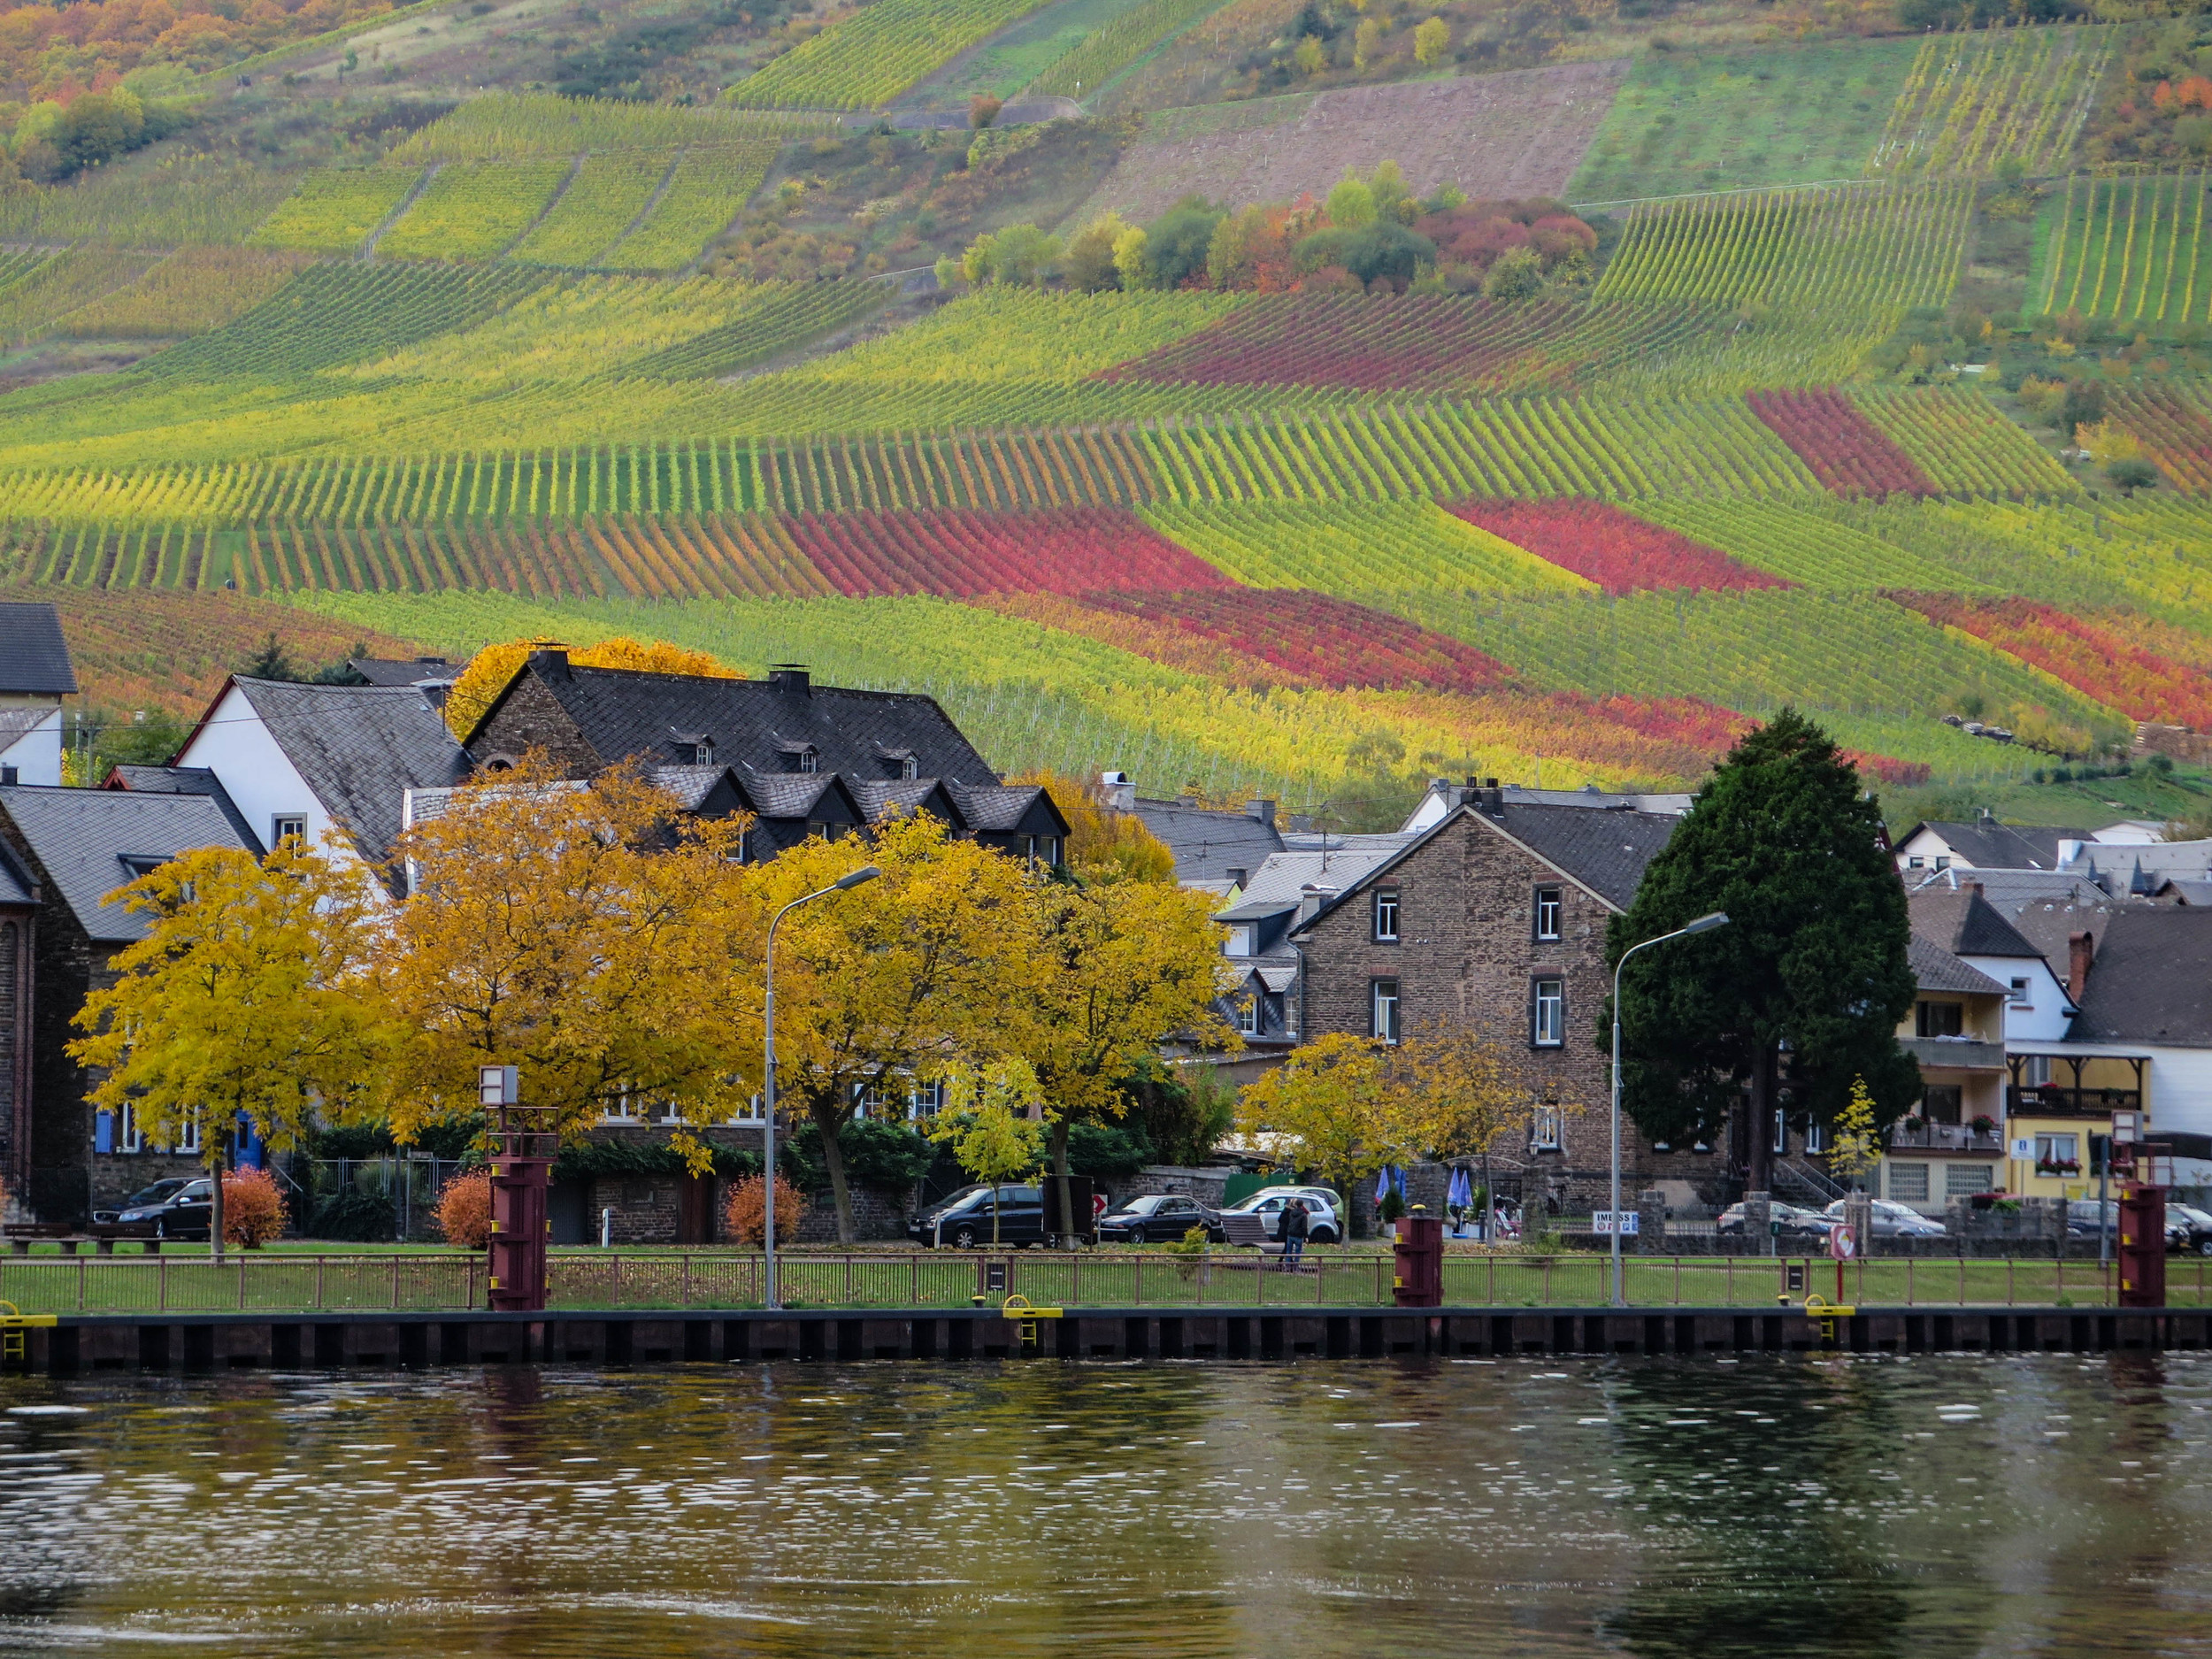 It was great to see the different colors of the vineyards in fall.